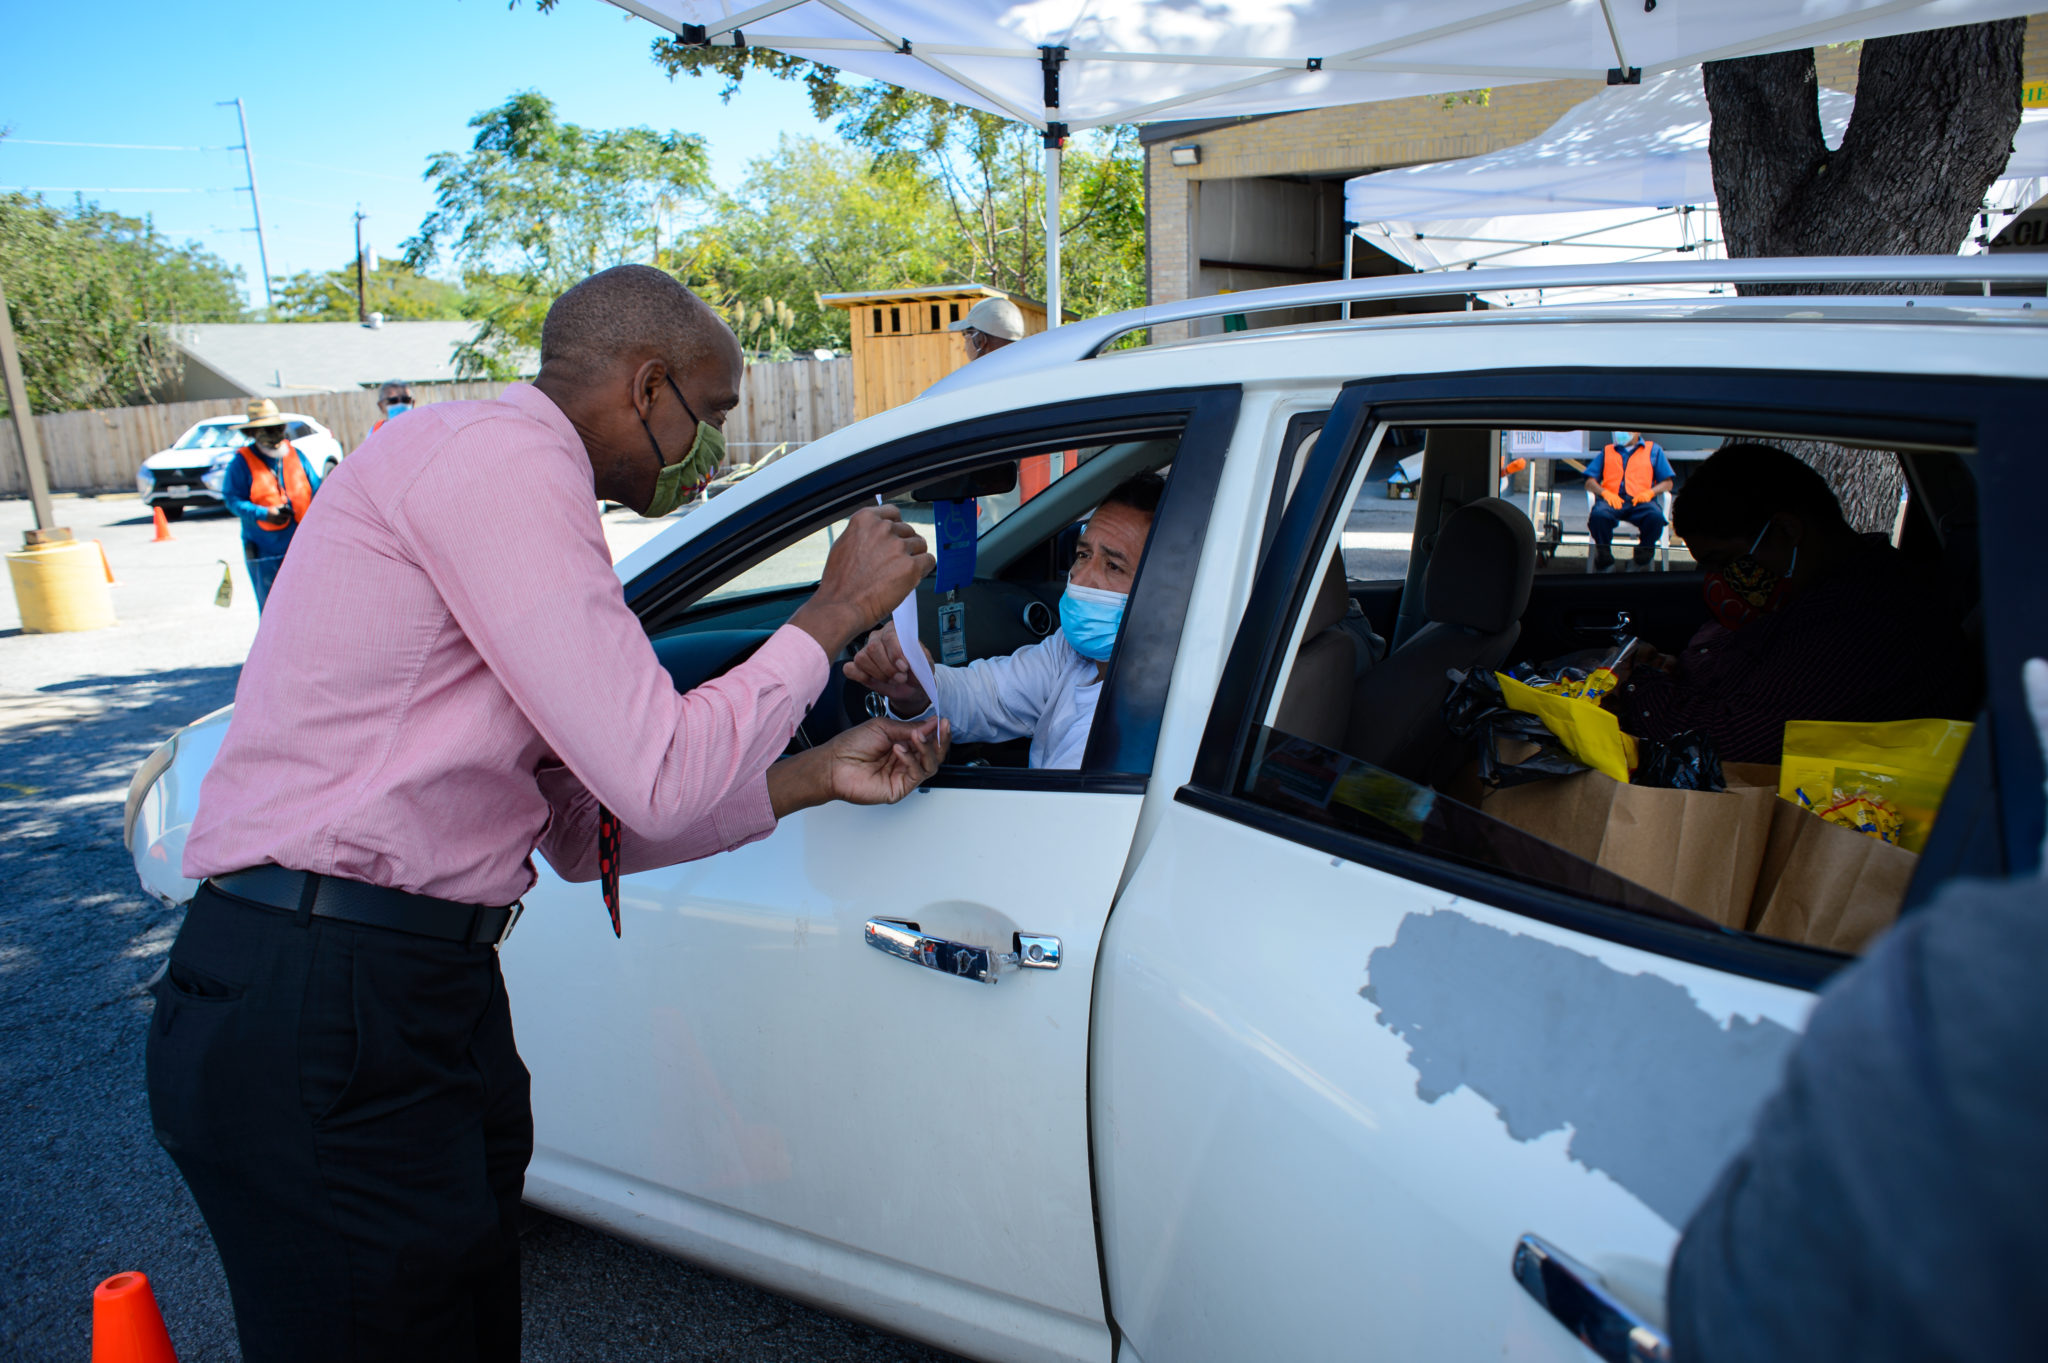 Bobby Blount hands out census information to a family who stopped for groceries at the Antioch Missionary Baptist Church food pantry and census drive